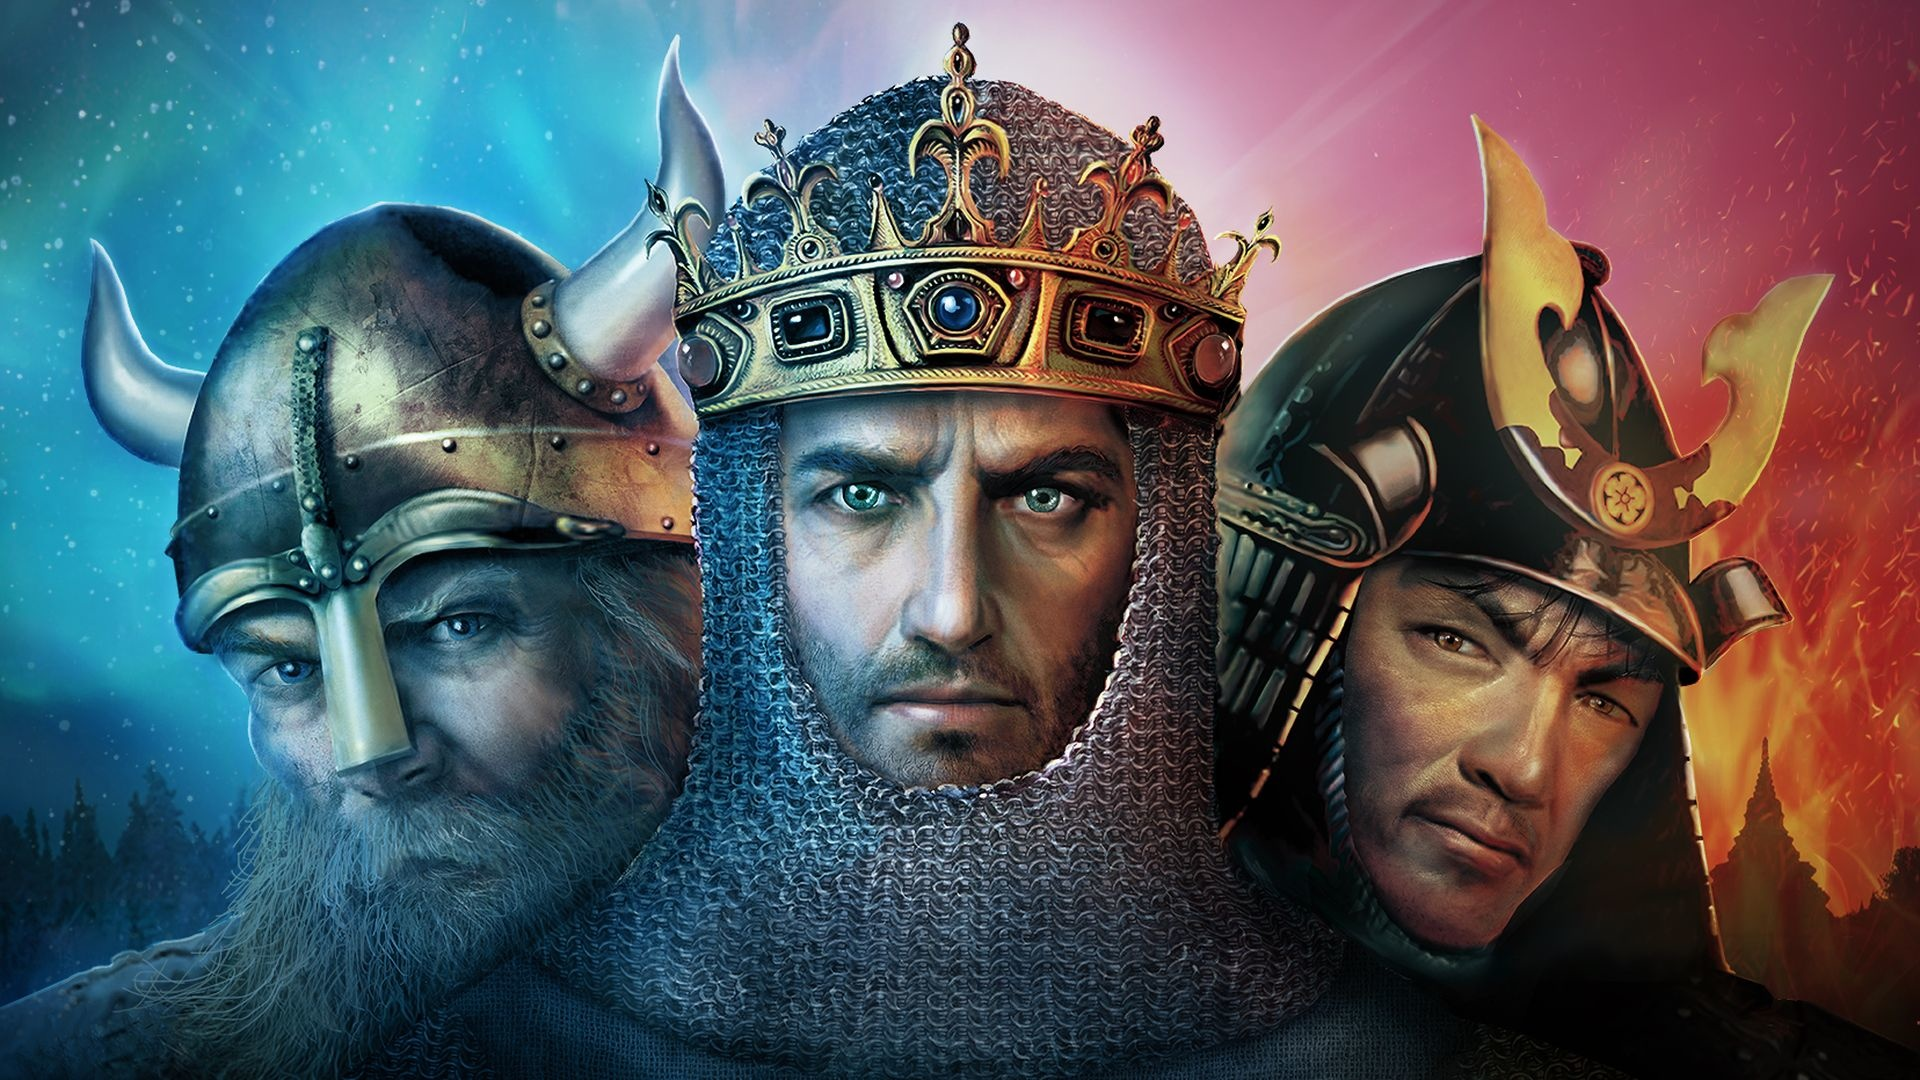 age-of-empires-2-wallpaper_6020225